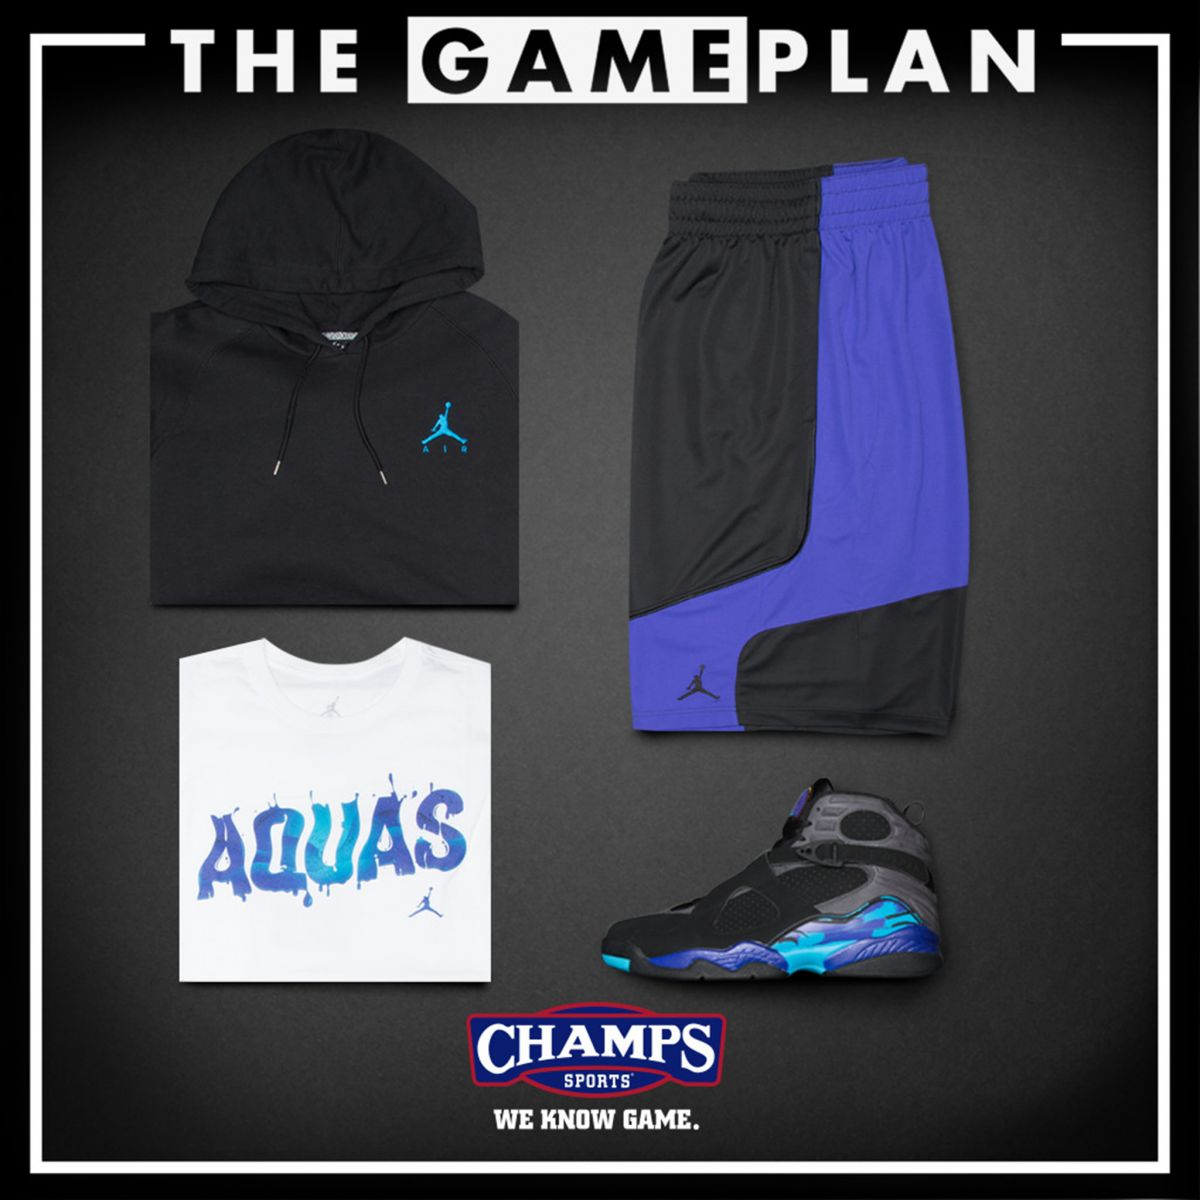 e683ee5ecffef7 The Game Plan by Champs Sports Presents the Jordan  Aqua  Collection ...